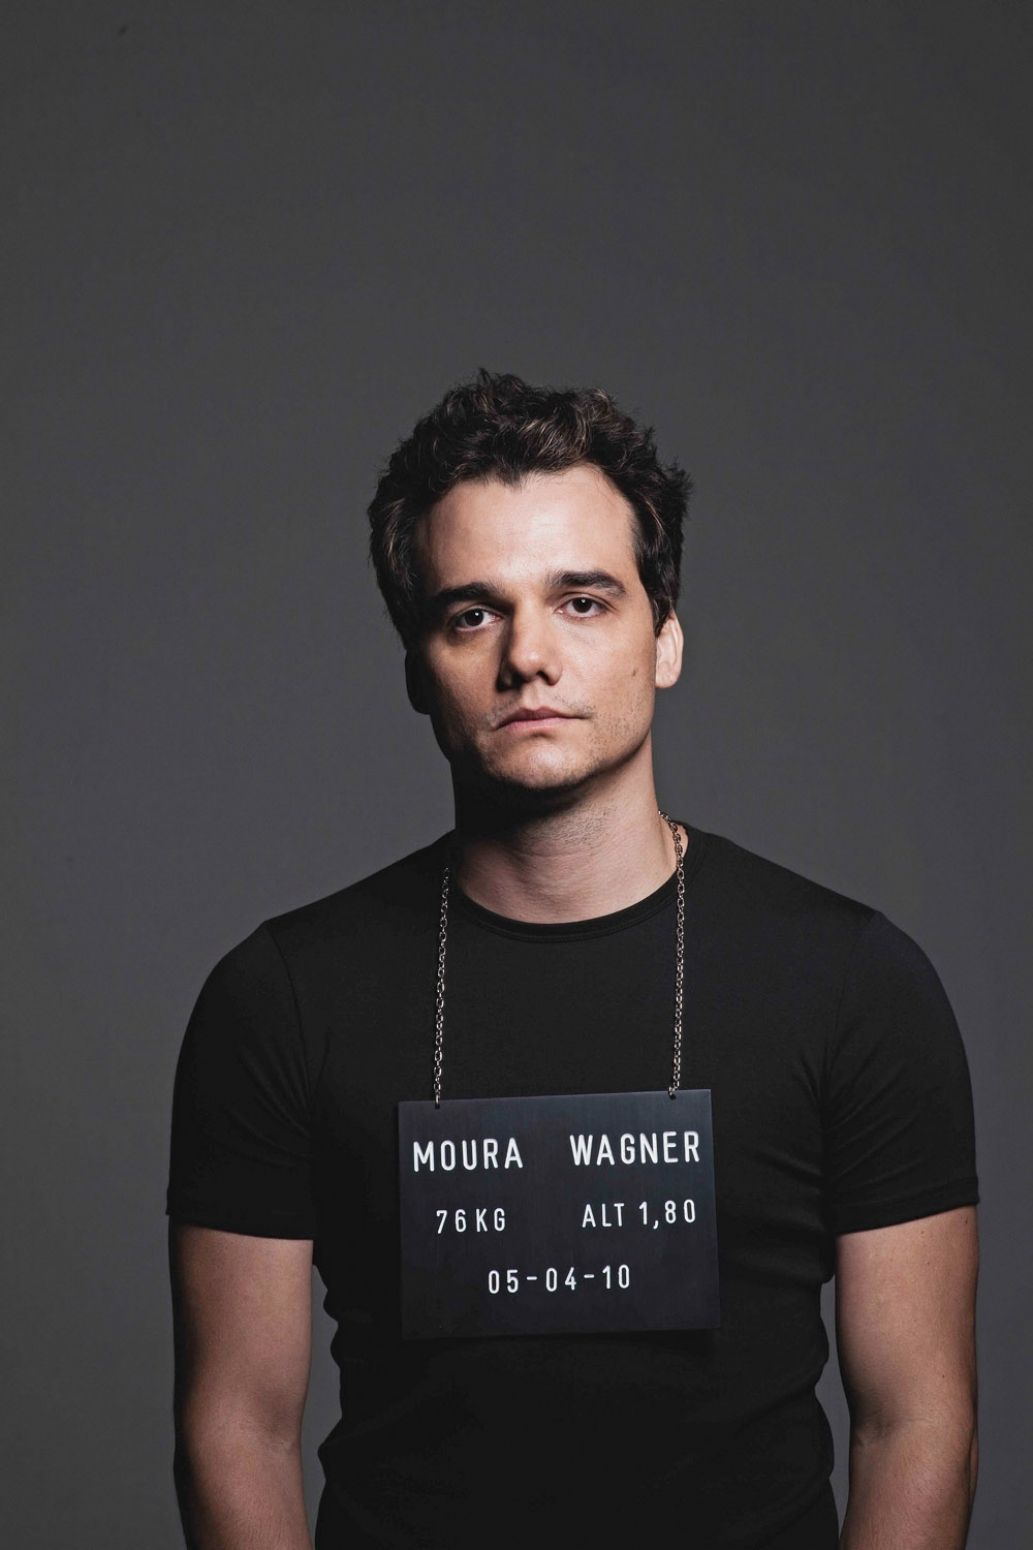 wagner moura pedro pascalwagner moura instagram, wagner moura wife, wagner moura height, wagner moura elysium, wagner moura 2016, wagner moura net worth, wagner moura 2017, wagner moura kimdir, wagner moura actor, wagner moura pedro pascal, wagner moura speaks spanish, wagner moura spider elysium, wagner moura accent, wagner moura wiki, wagner moura before, wagner moura biography, wagner moura pablo escobar, wagner moura narcos, wagner moura wikipedia, wagner moura filmes